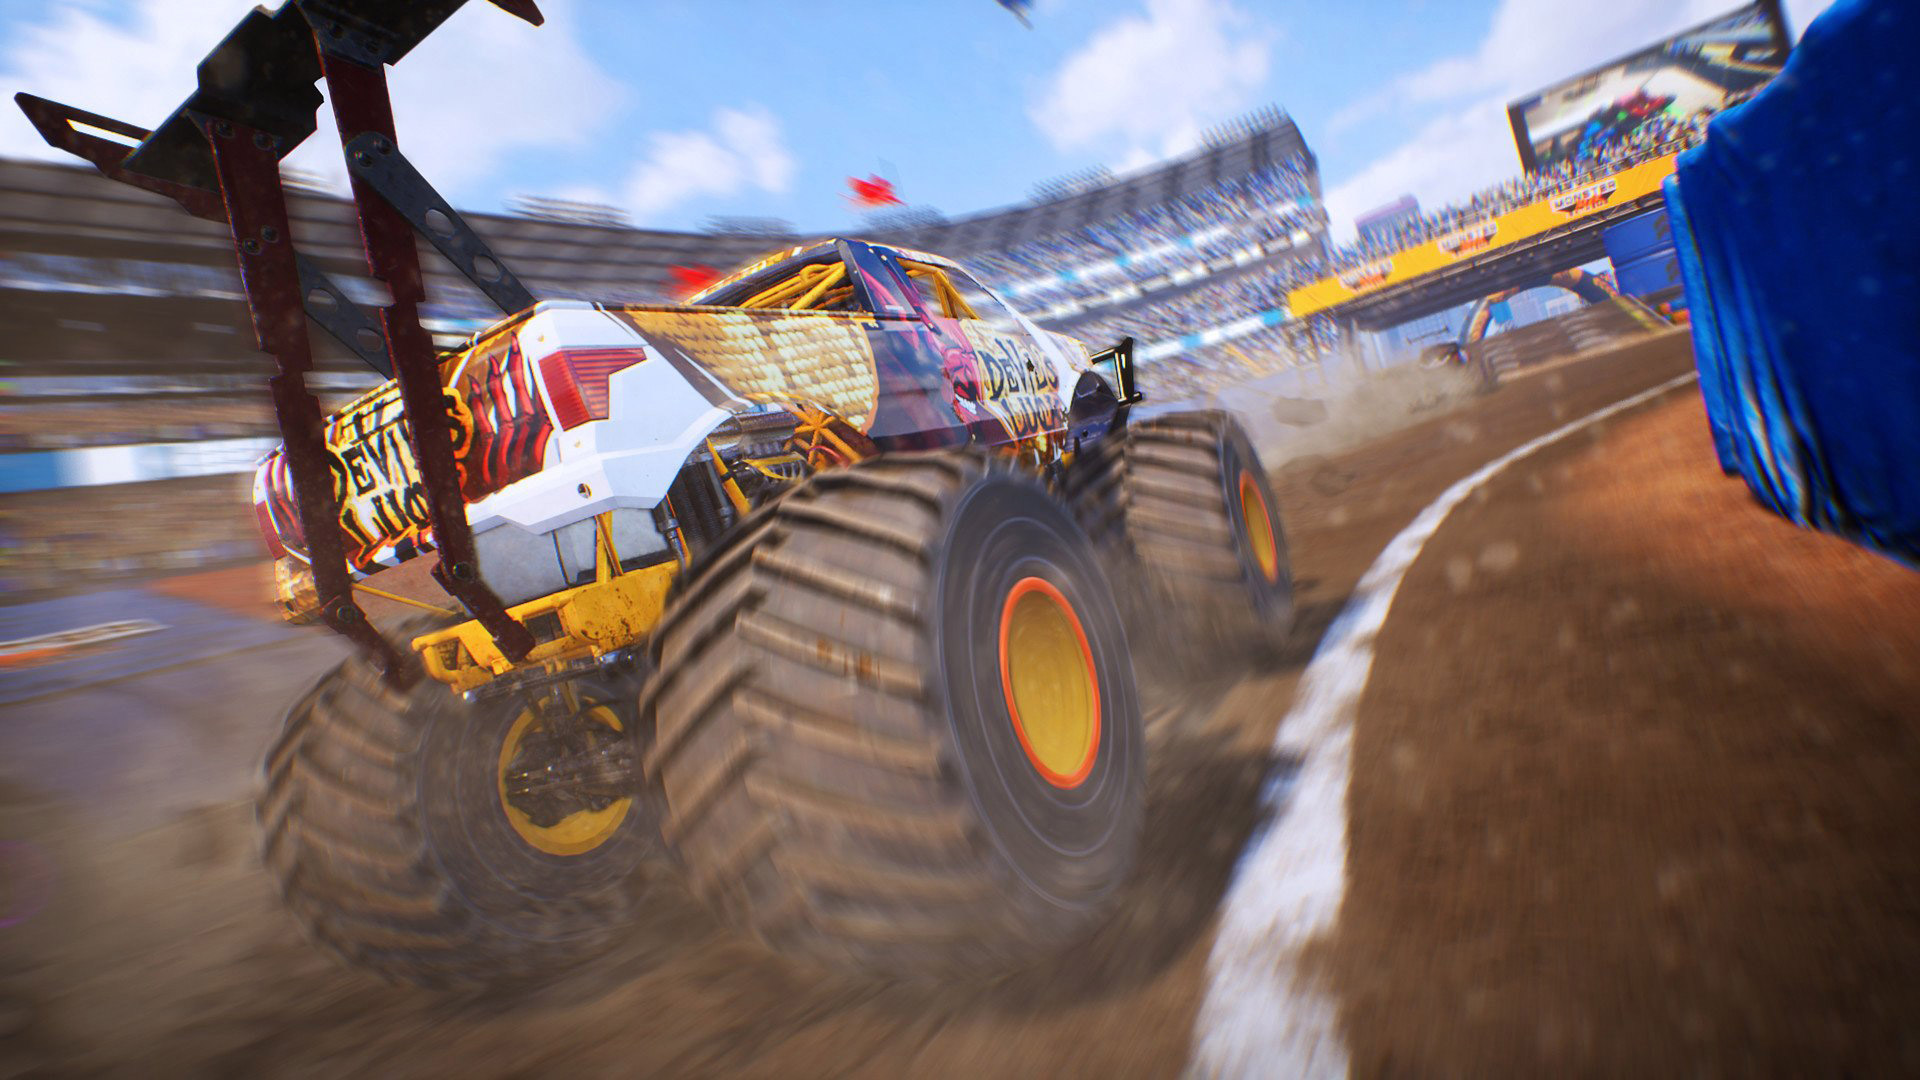 Monster Truck Championship Wallpaper in 1920x1080